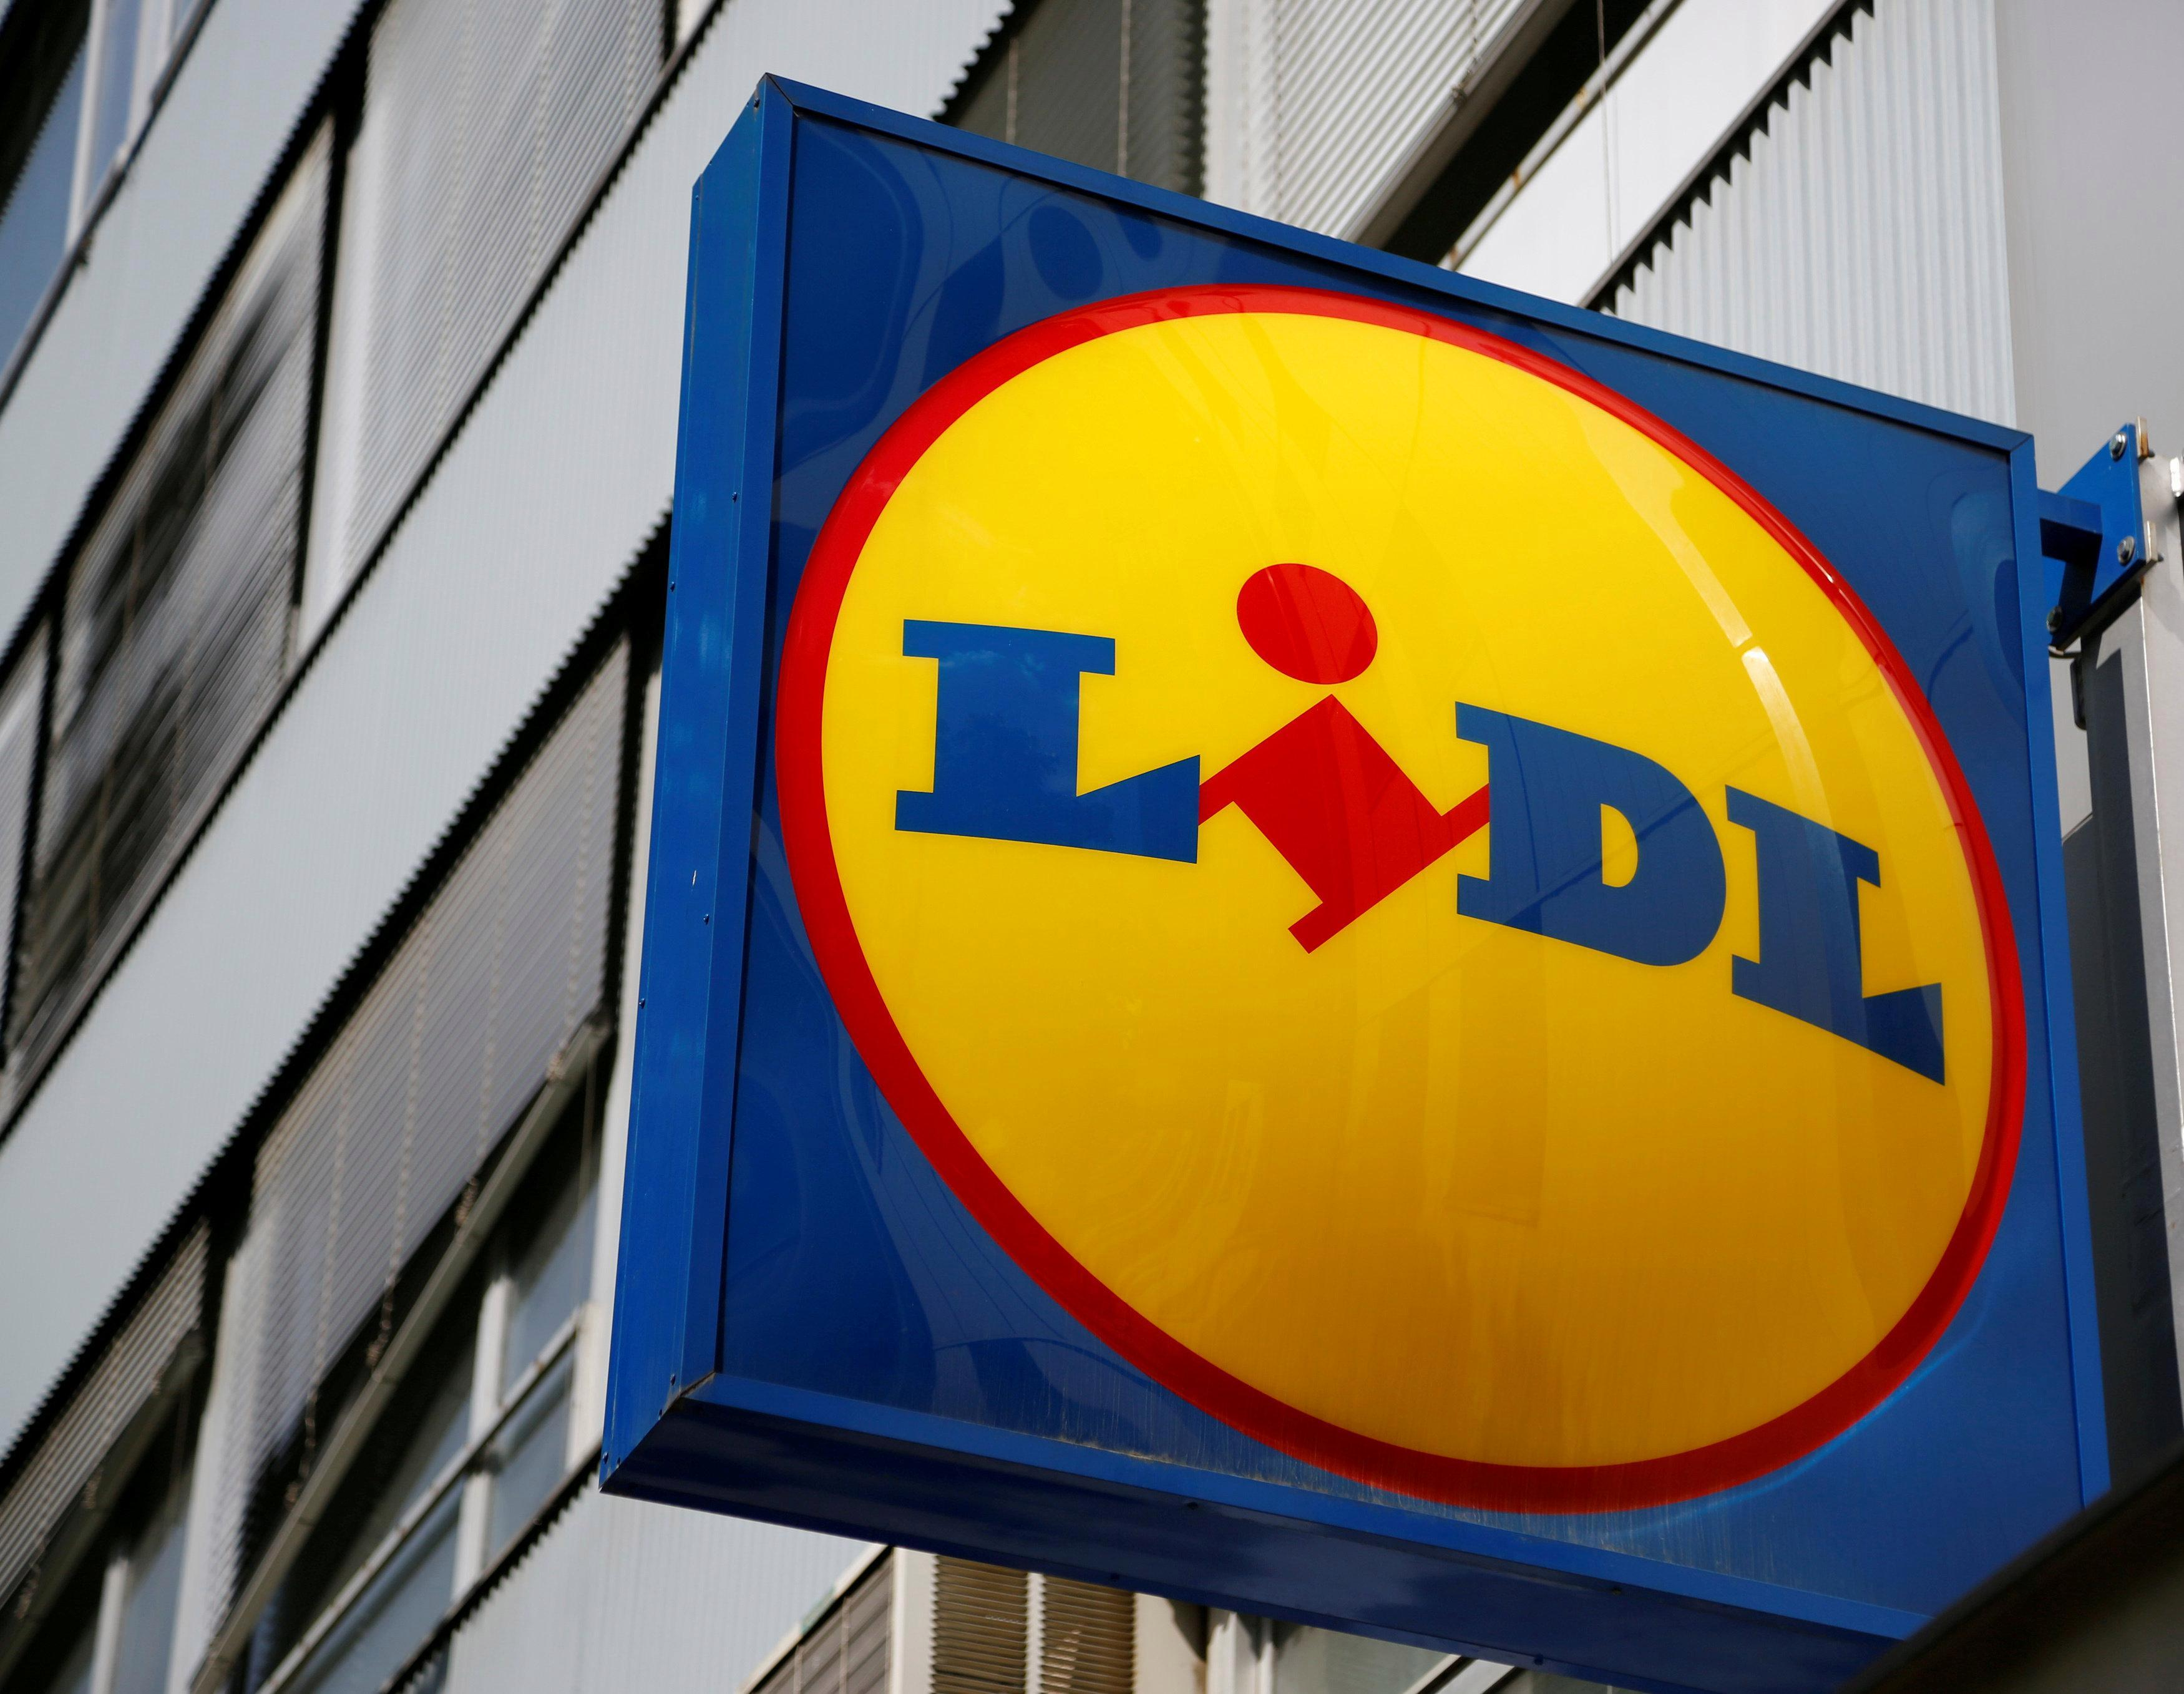 Lidl Christmas 2018 hours – what time is the supermarket open over Christmas and New Year?